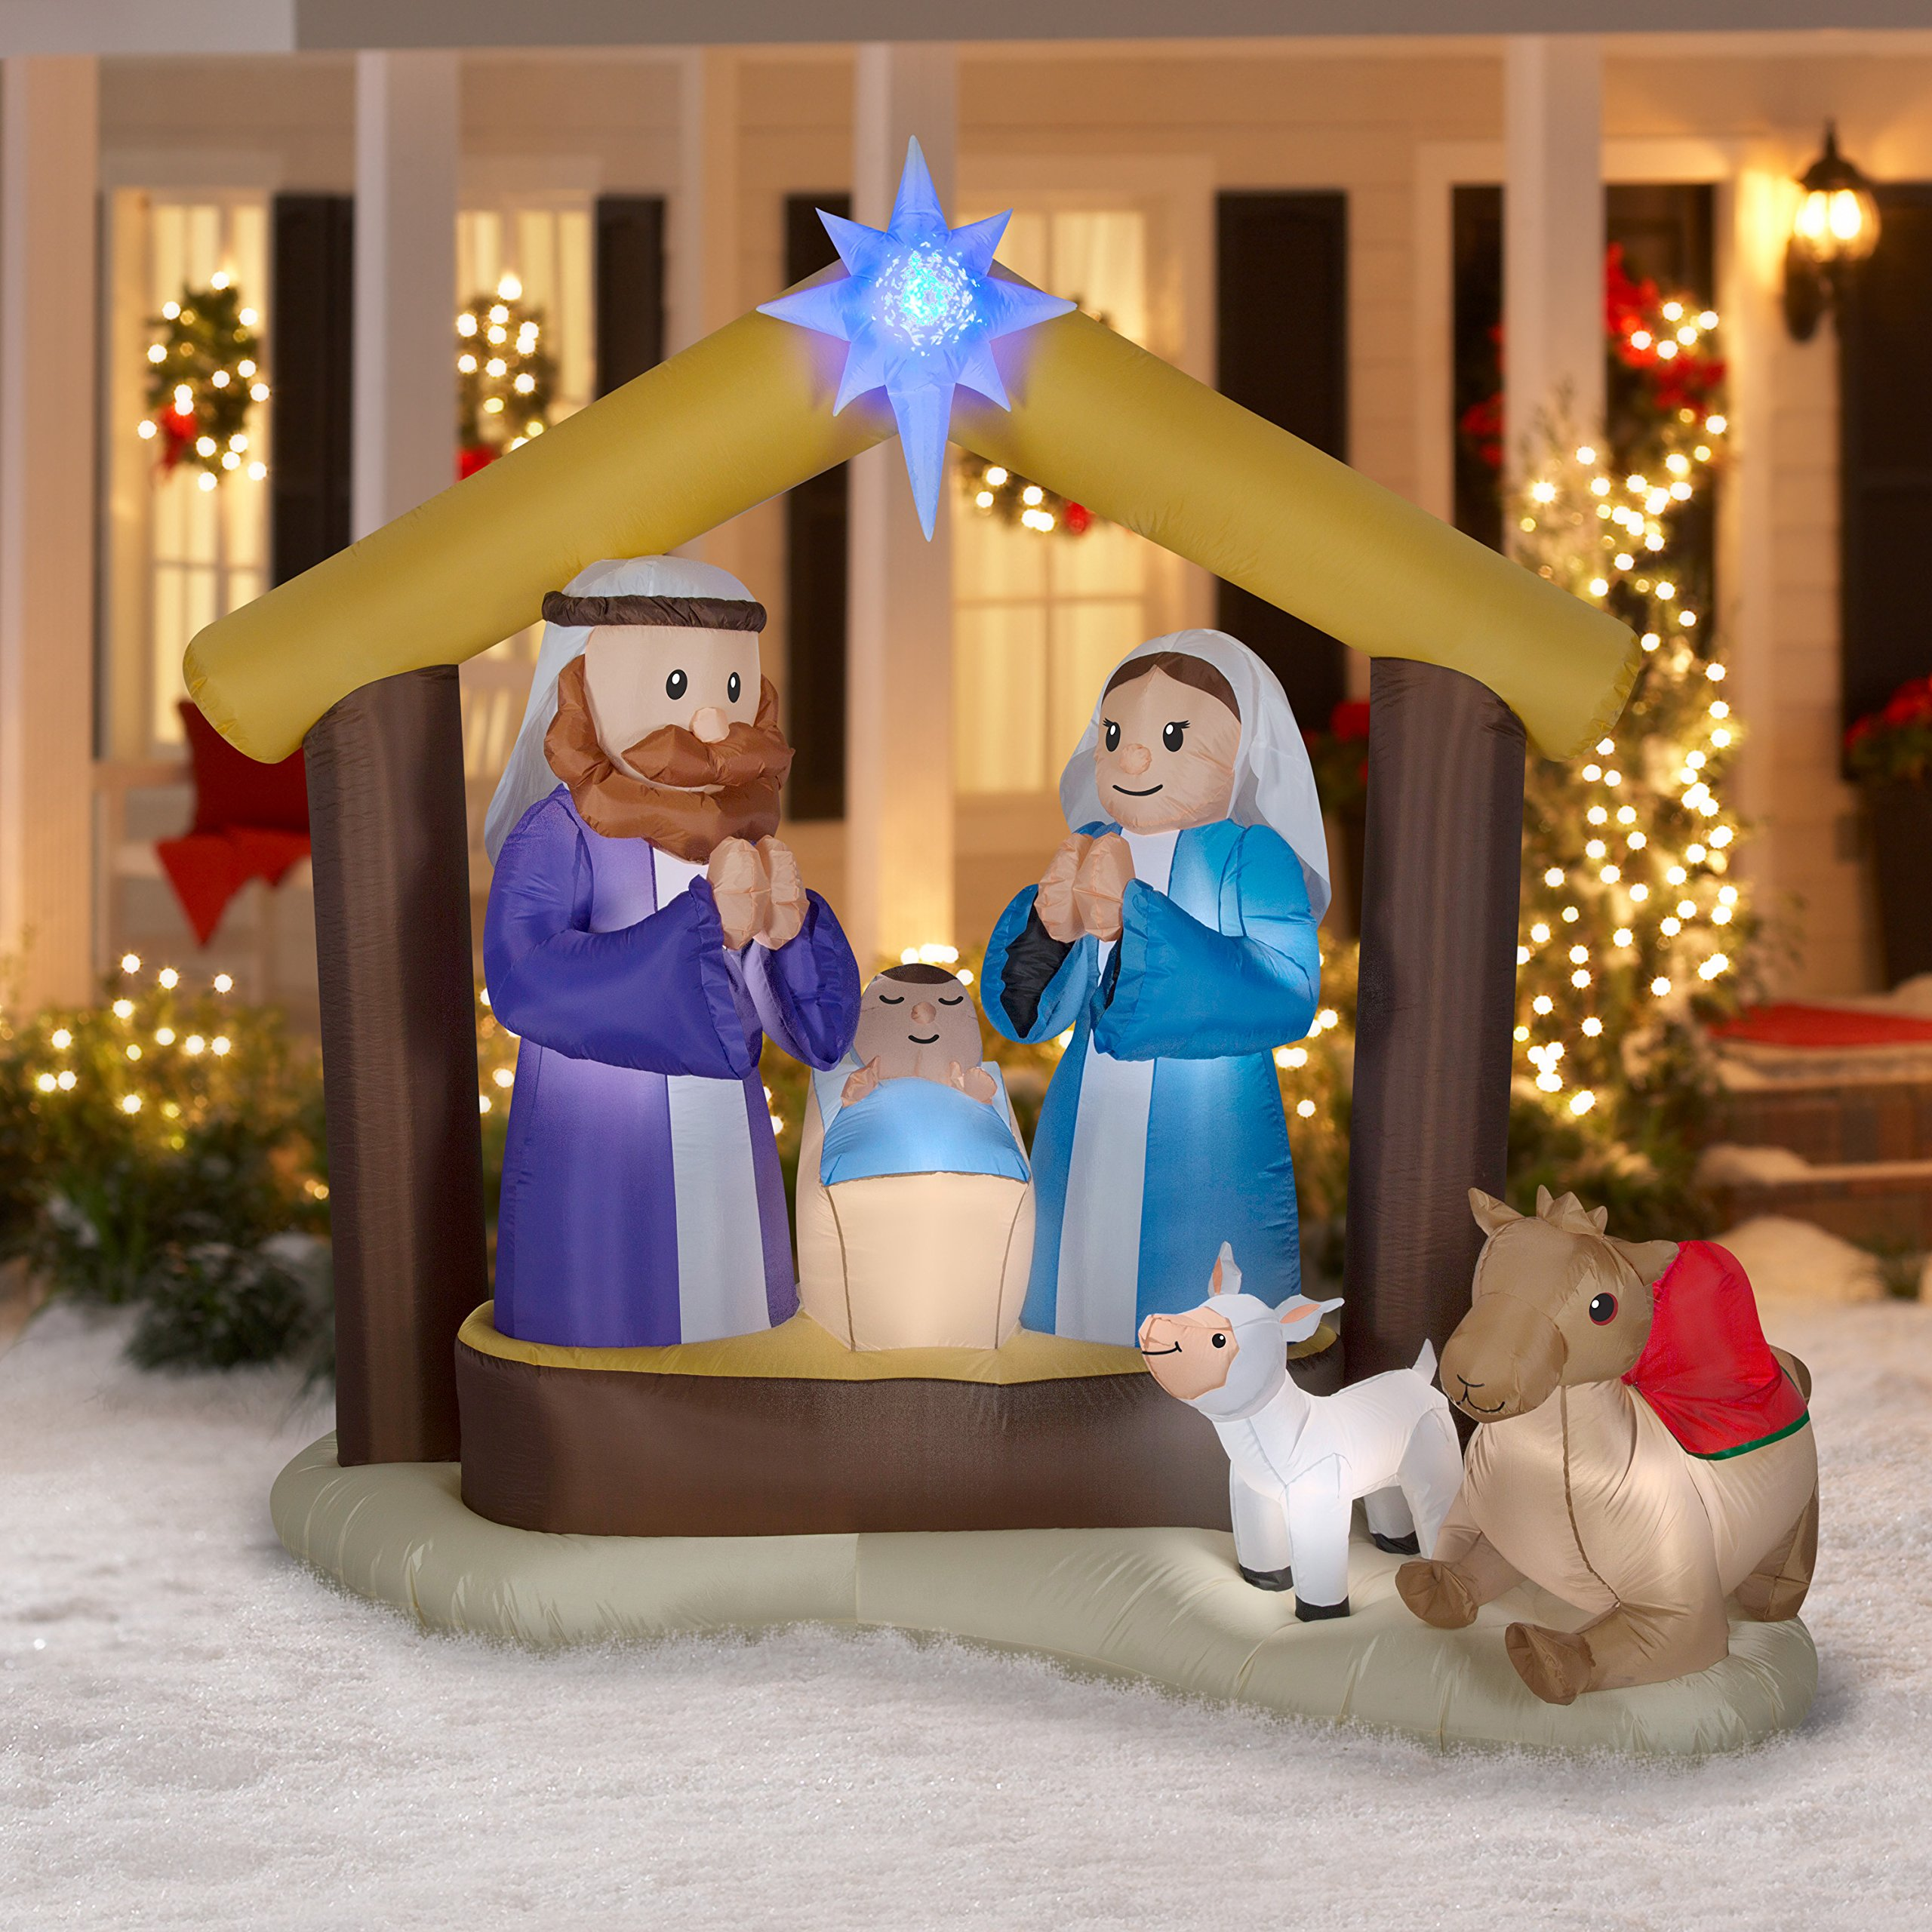 LightShow Airblown Inflatable Kaleidoscope Nativity Scene Outdoor Decoration by Gemmy (Image #3)